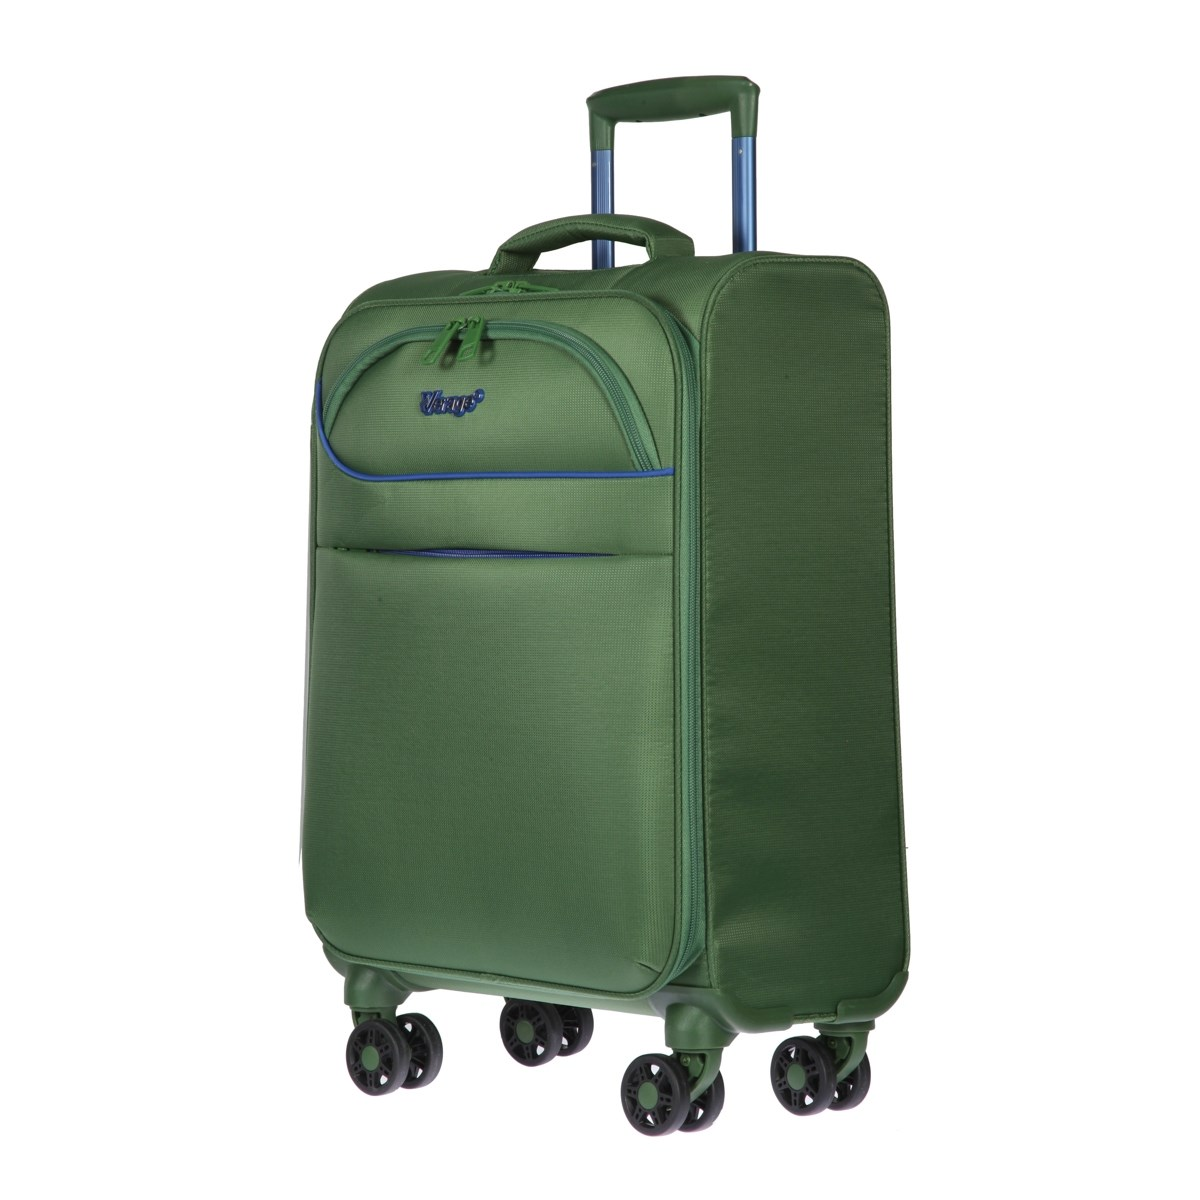 Suitcase-trolley Verage GM17019W18.5 Ivy Green allenjoy backgrounds for photo studio ivy green gray wood backdrop for photographing children